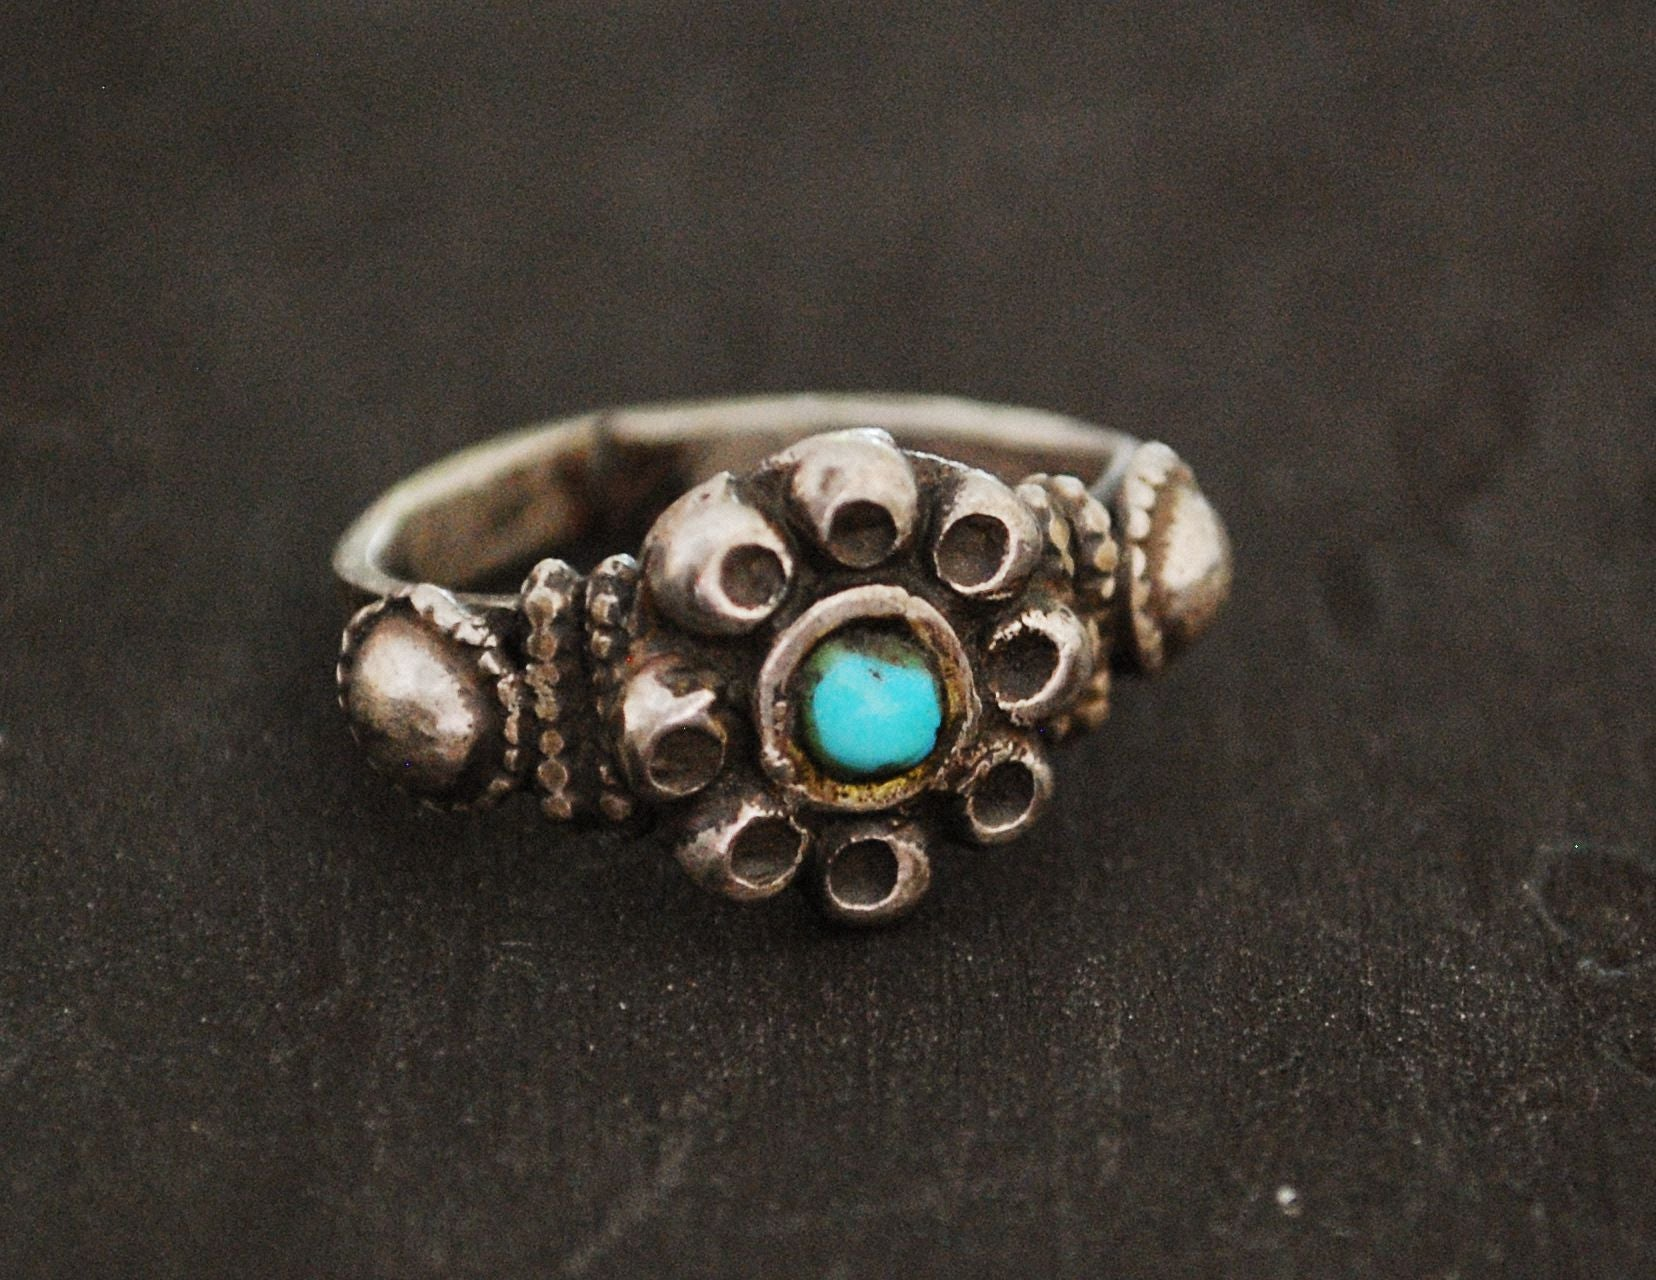 Rajasthani Turquoise Ring - Size 6 - Rajasthani Ring - Rajasthani Jewelry - India Silver Ring - Indian Tribal Ring - Ethnic Jewelry